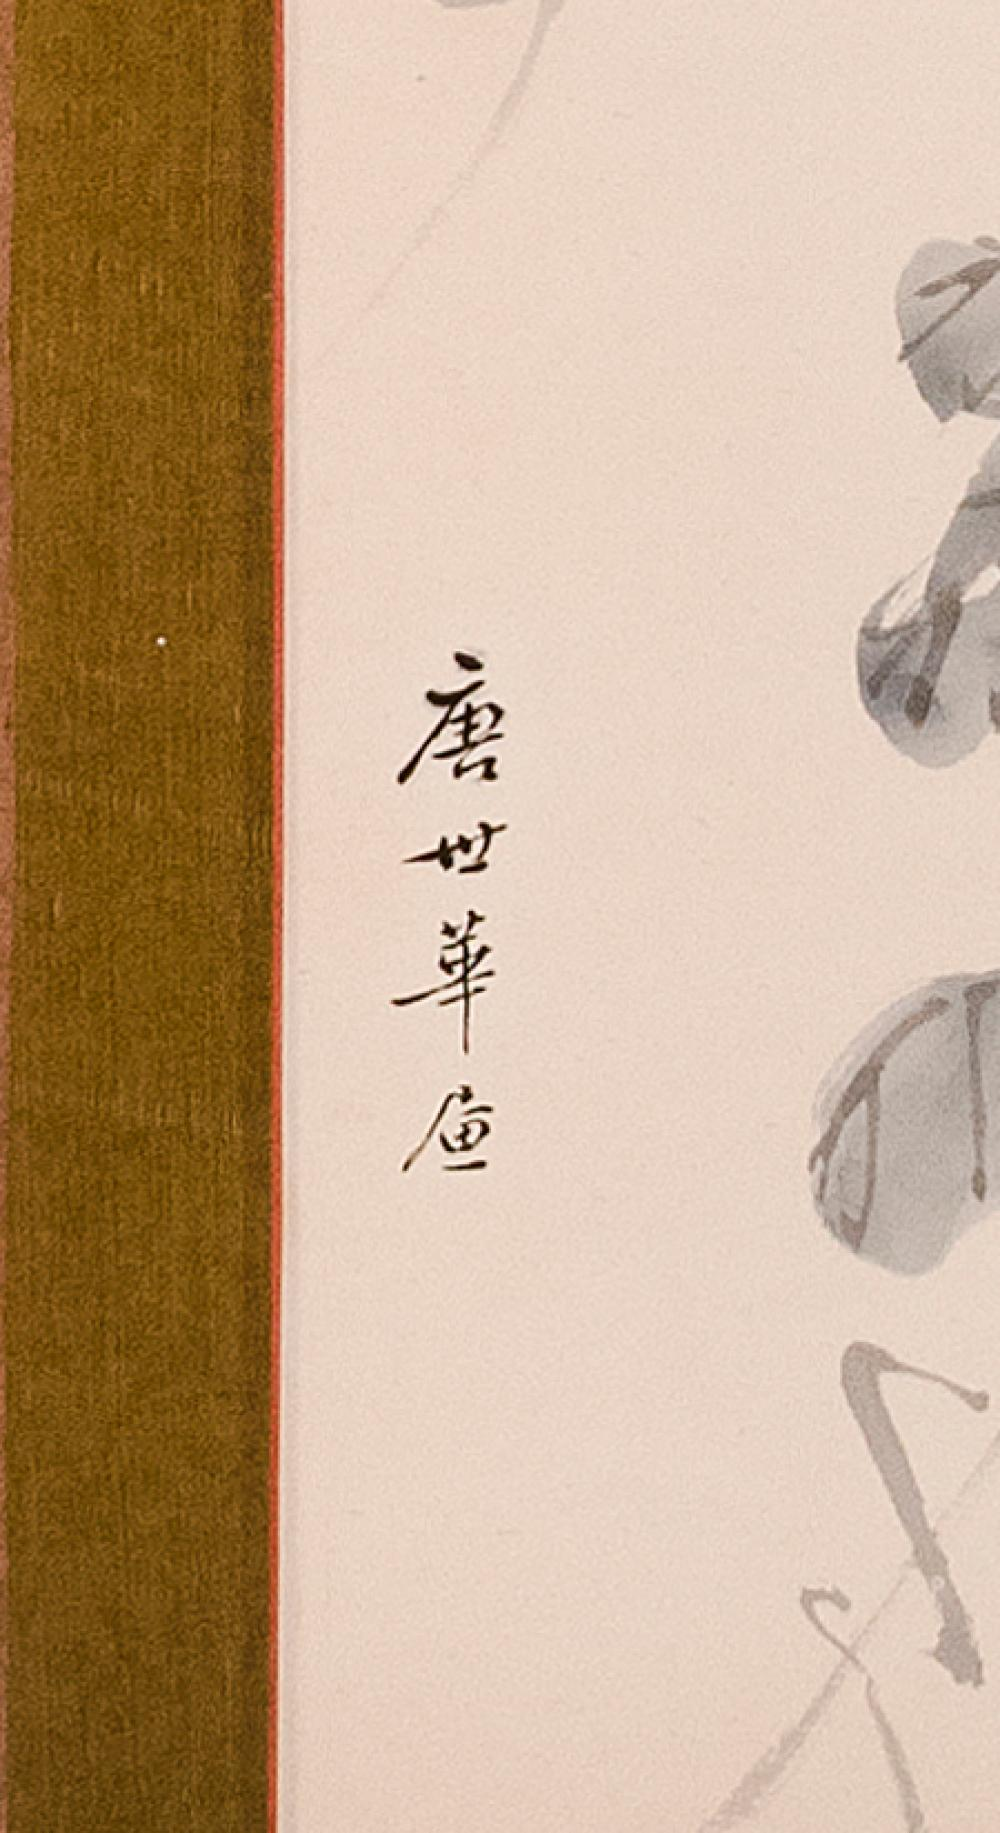 "Lot 1067: CHINESE SCROLL PAINTING ON PAPER Depicting gourds and vines. Signed. 40"" x 9.5""."